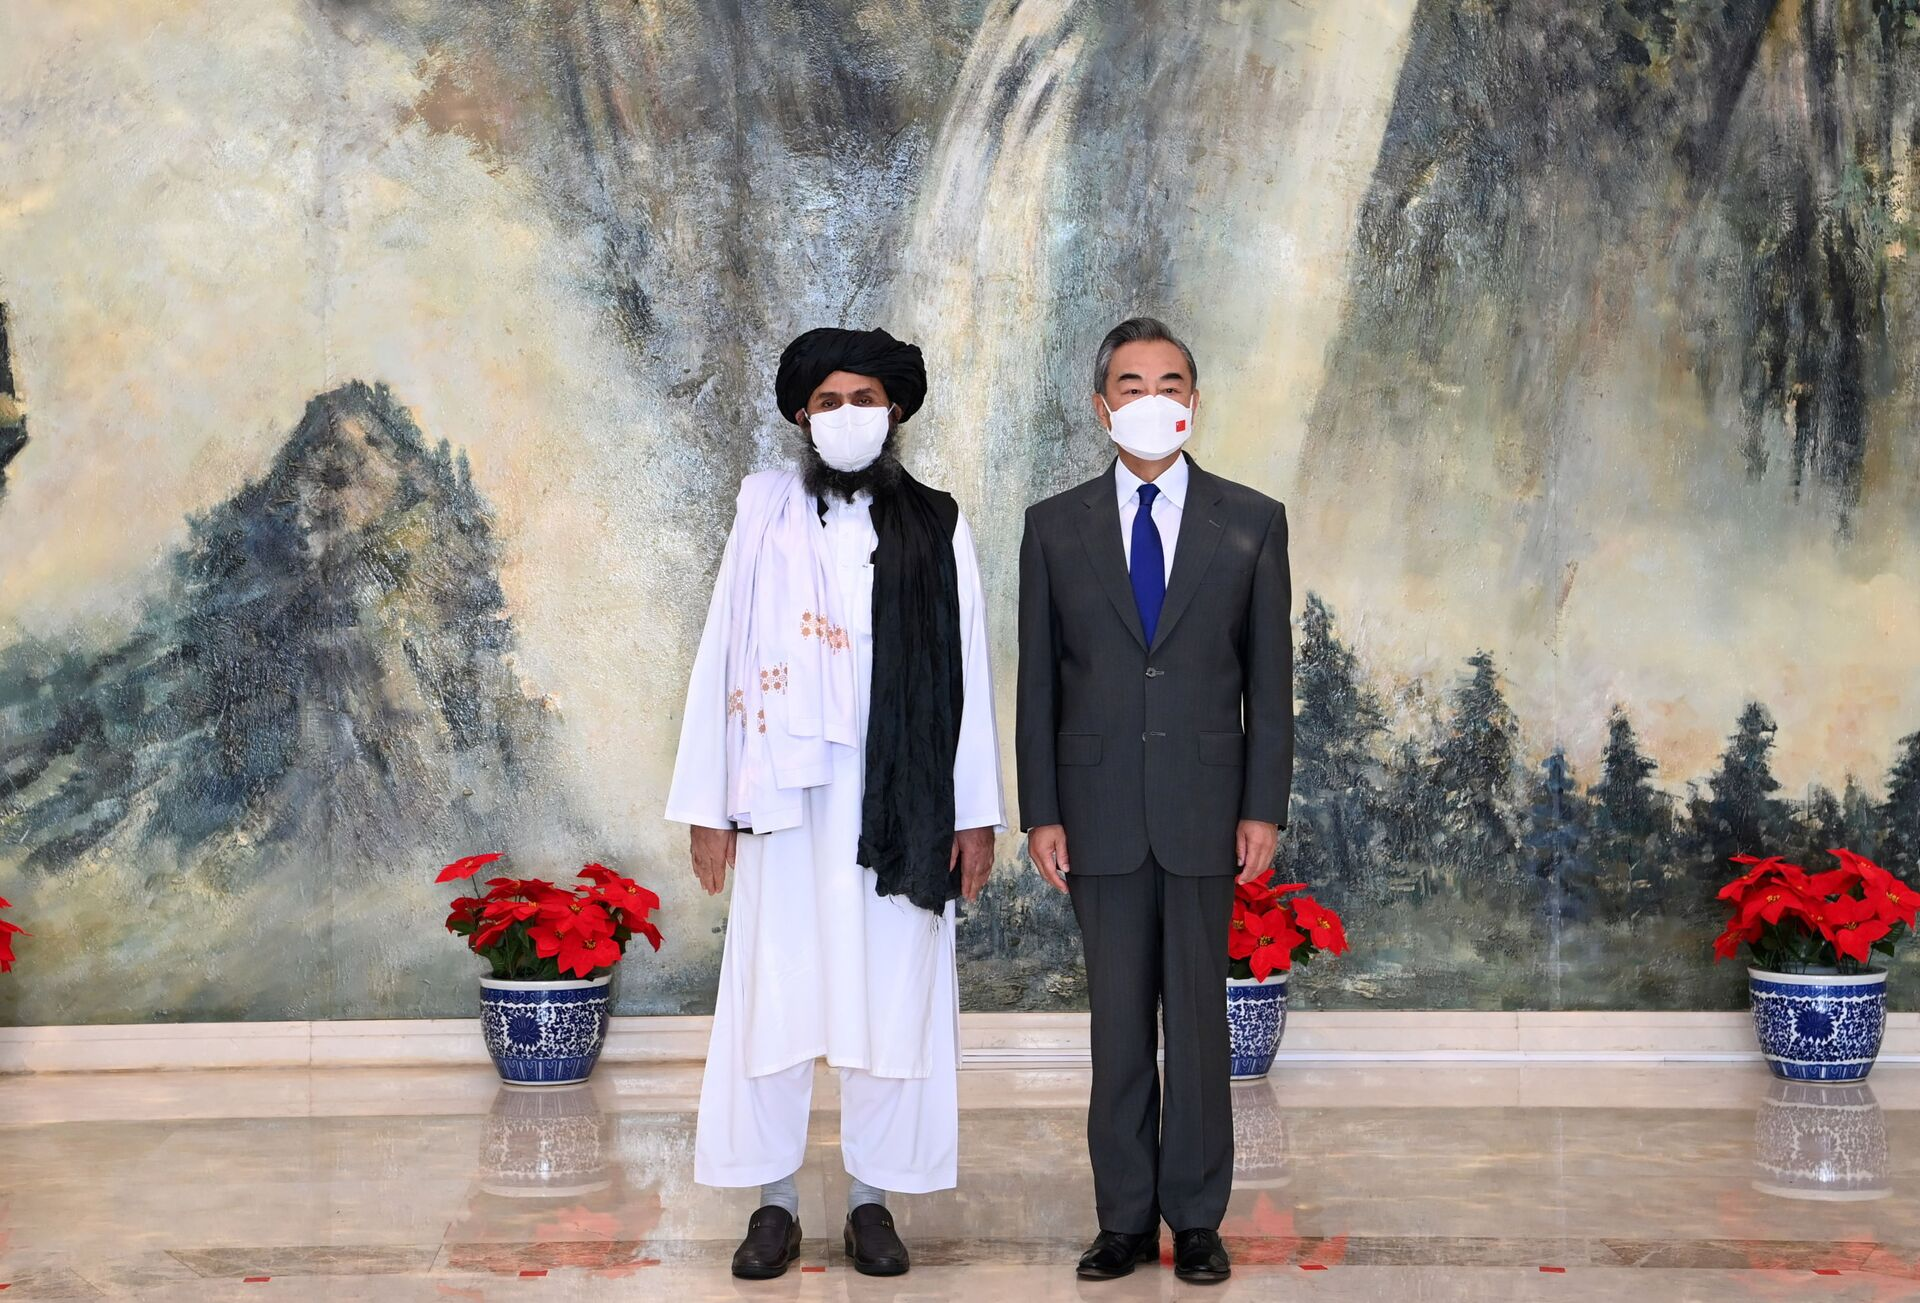 Chinese State Councilor and Foreign Minister Wang Yi meets with Mullah Abdul Ghani Baradar, political chief of Afghanistan's Taliban, in Tianjin, China July 28, 2021. Picture taken July 28, 2021. - Sputnik International, 1920, 07.09.2021